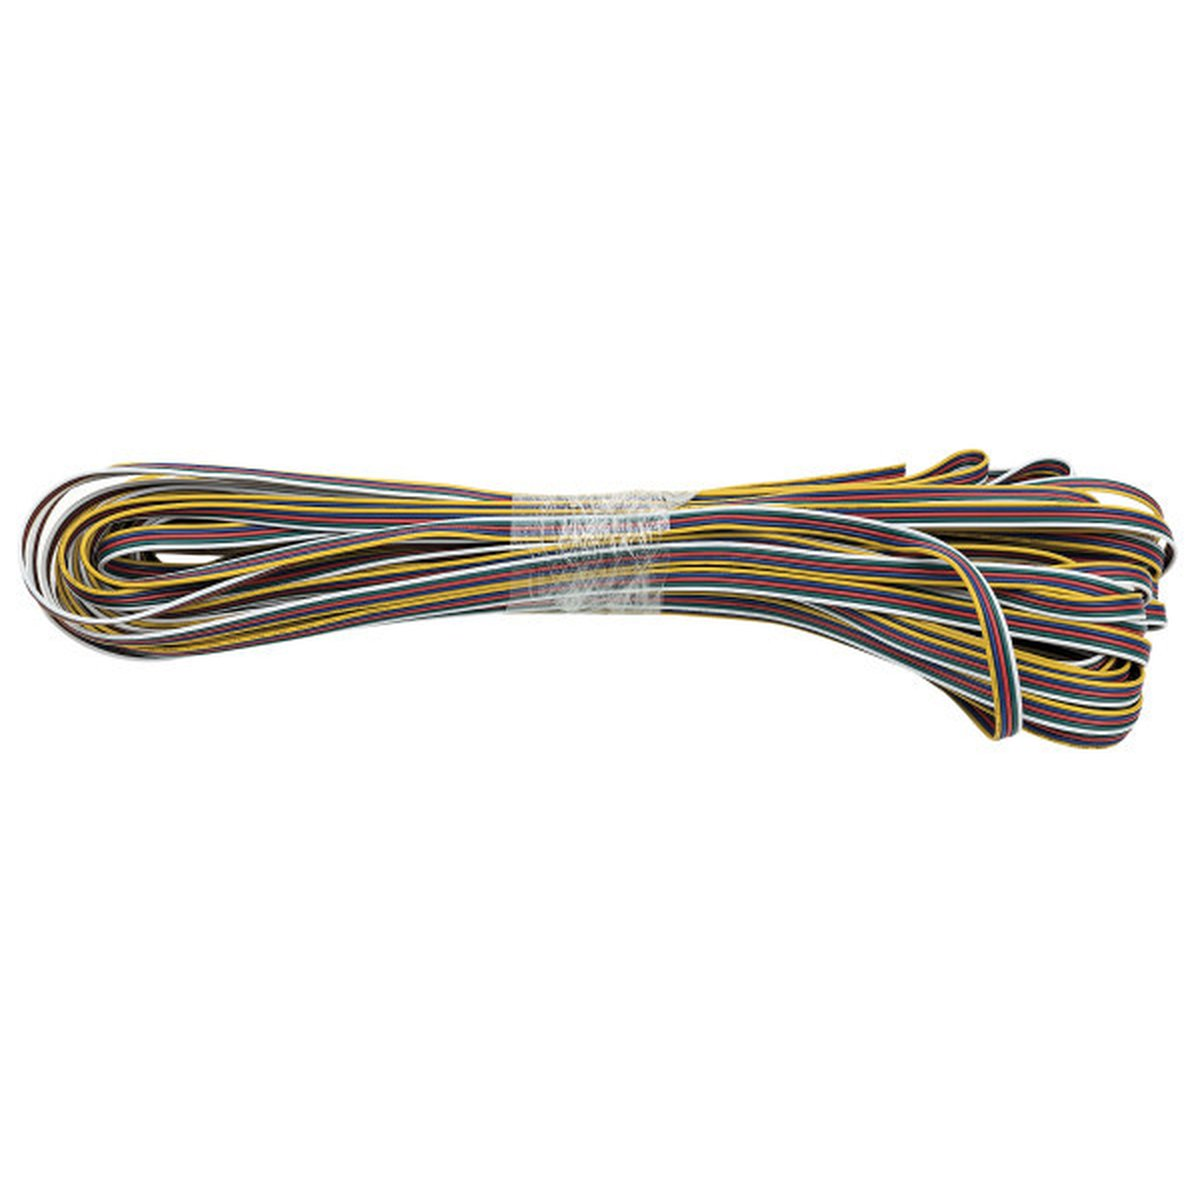 Artecta RGBW flat cable 25 m